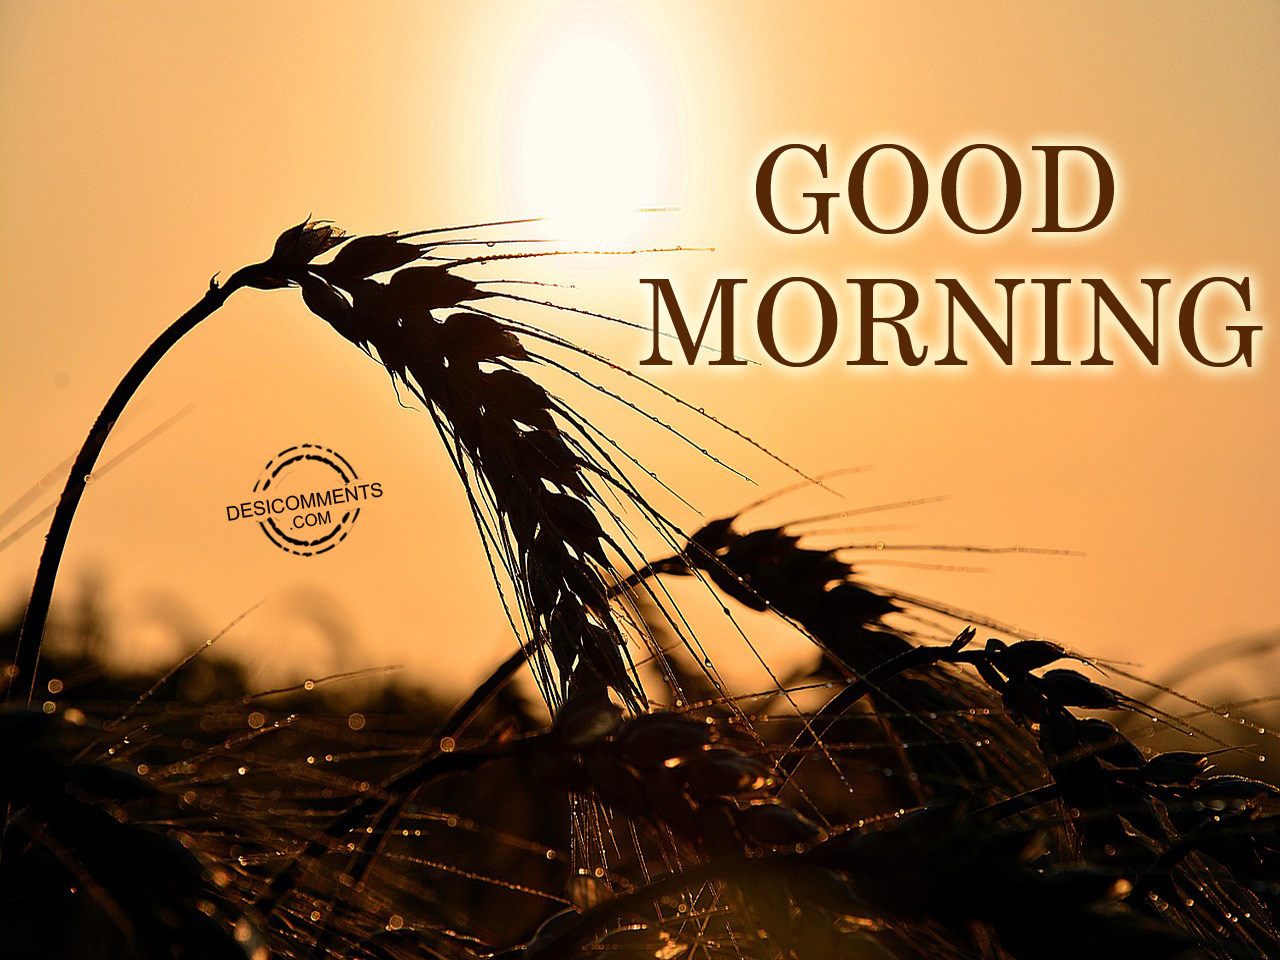 Good Morning Pictures And Images : Good morning pictures images graphics for facebook